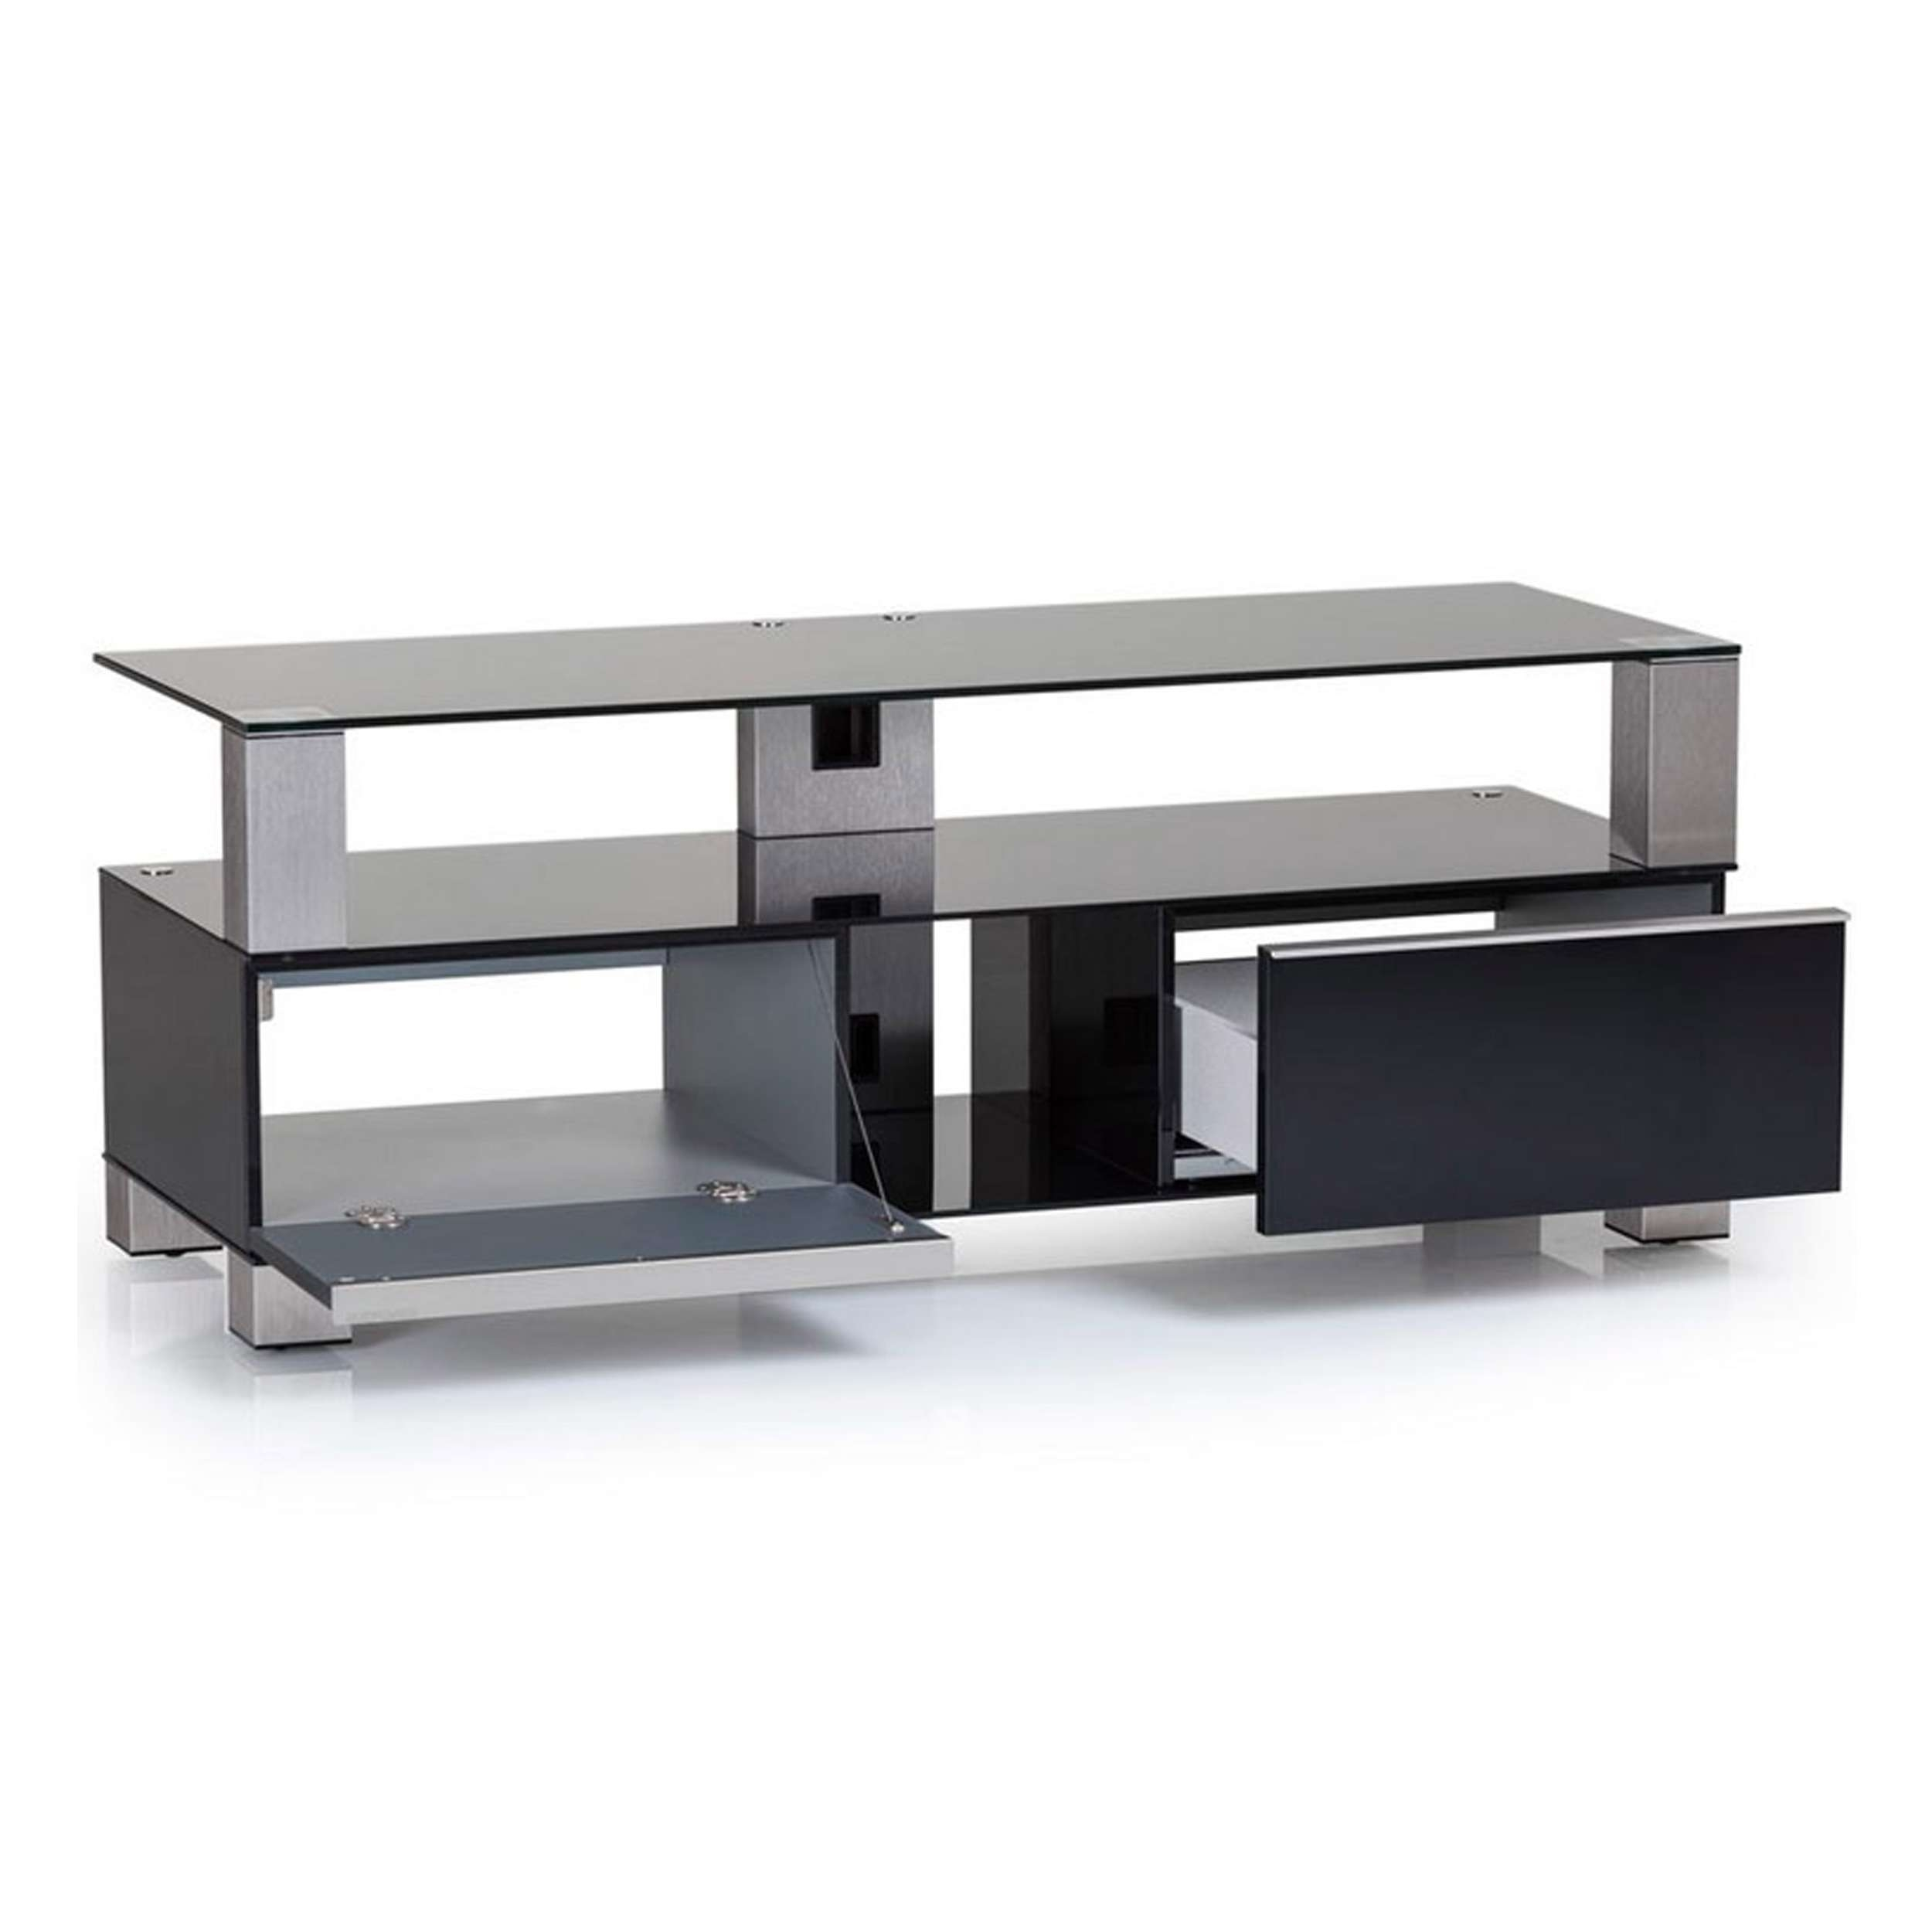 """Sonorous Md9120 B Inx Blk Black Cabinet For Tvs Up To 50"""" Pertaining To Sonorous Tv Cabinets (View 6 of 20)"""